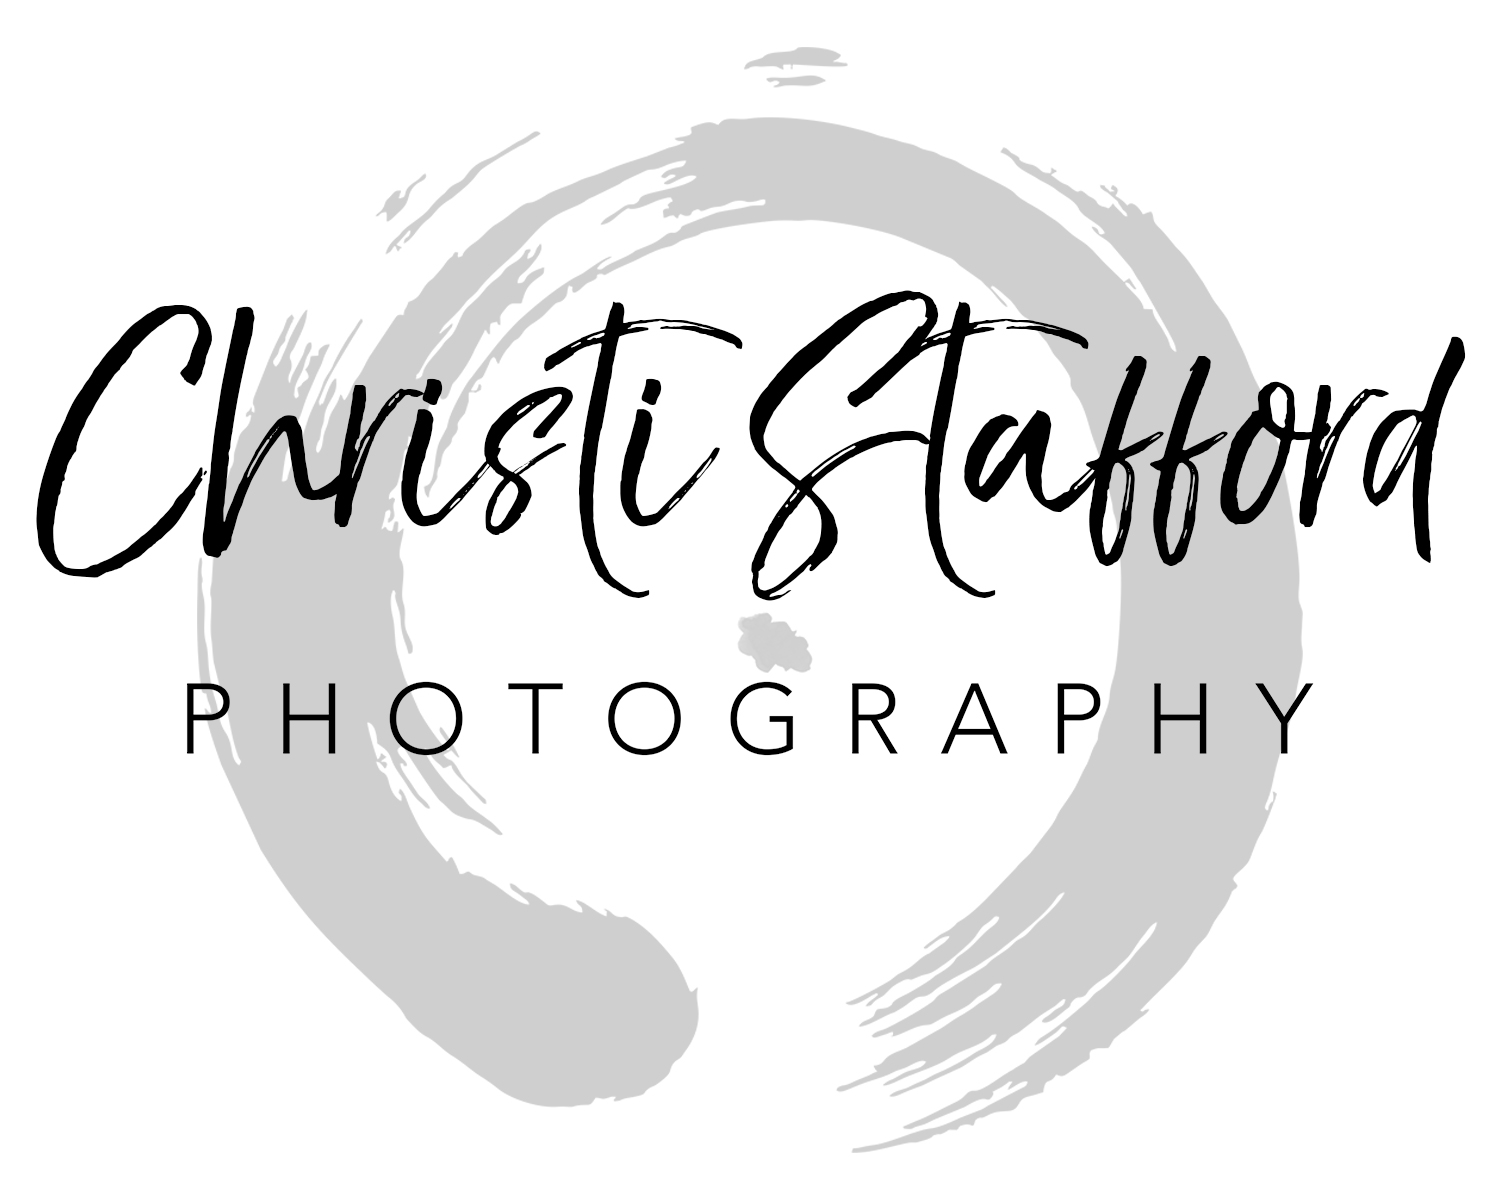 Lynchburg - Charlottesville - Roanoke - Central Virginia Birth Photographer | Christi Stafford Photography